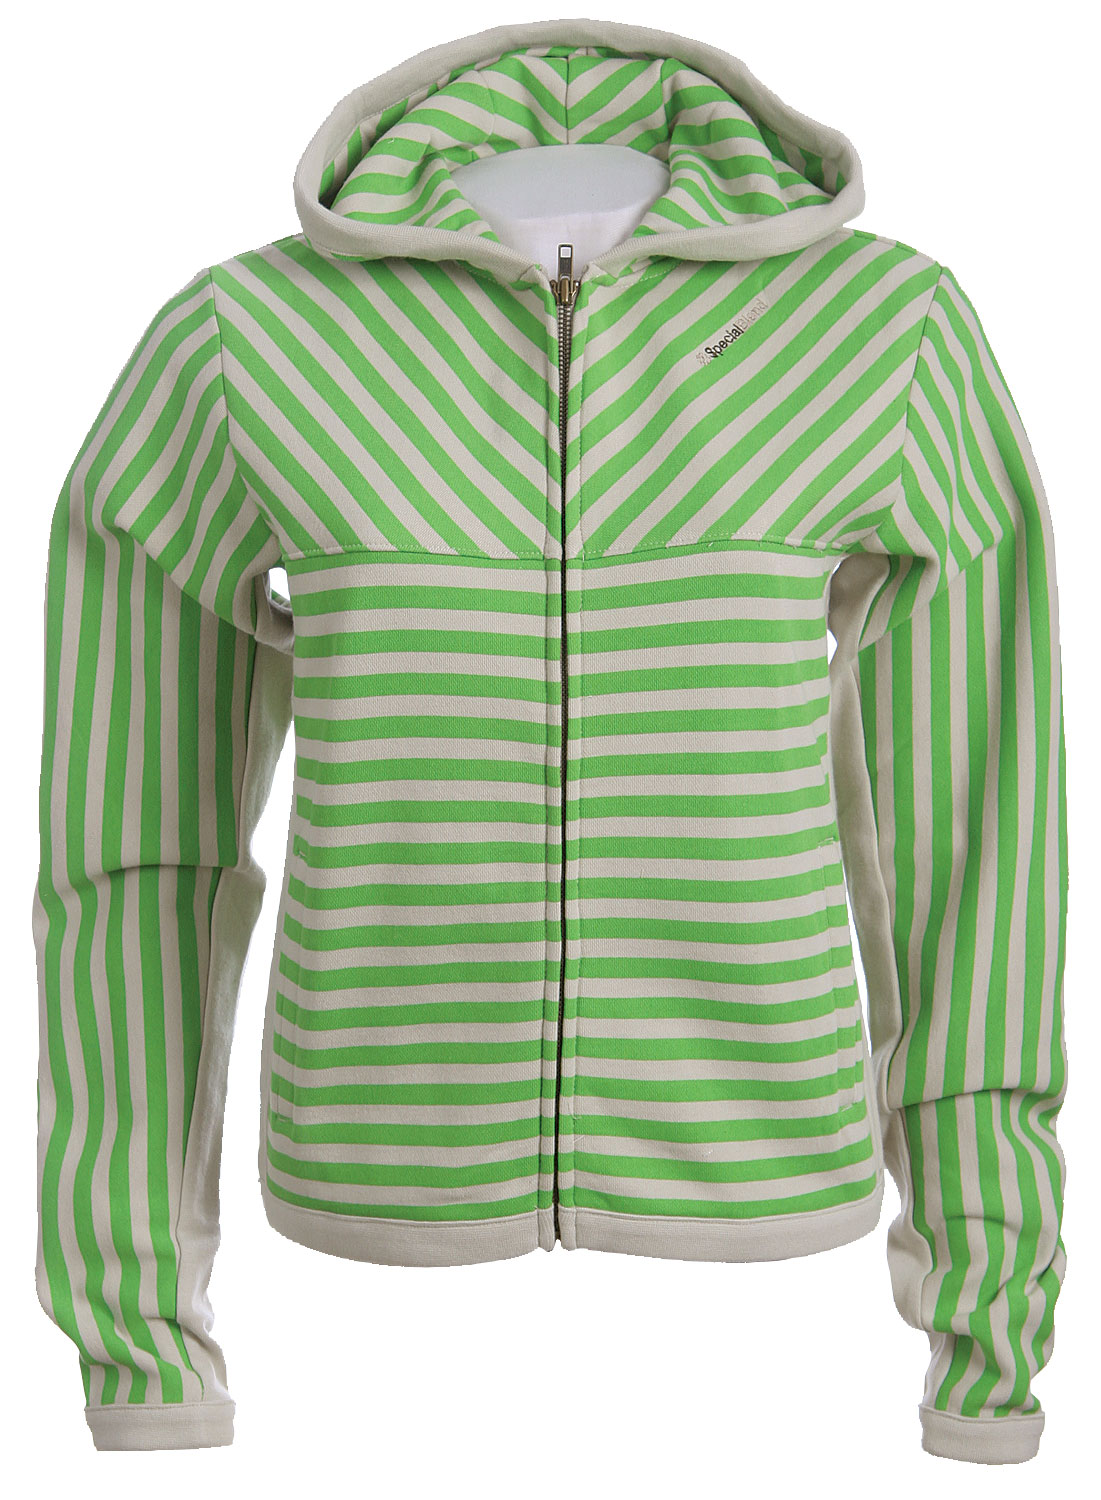 The Special Blend Stripe Women's Zip Hoodie is 80% Cotton / 20% Polyester - 360gm - $14.95